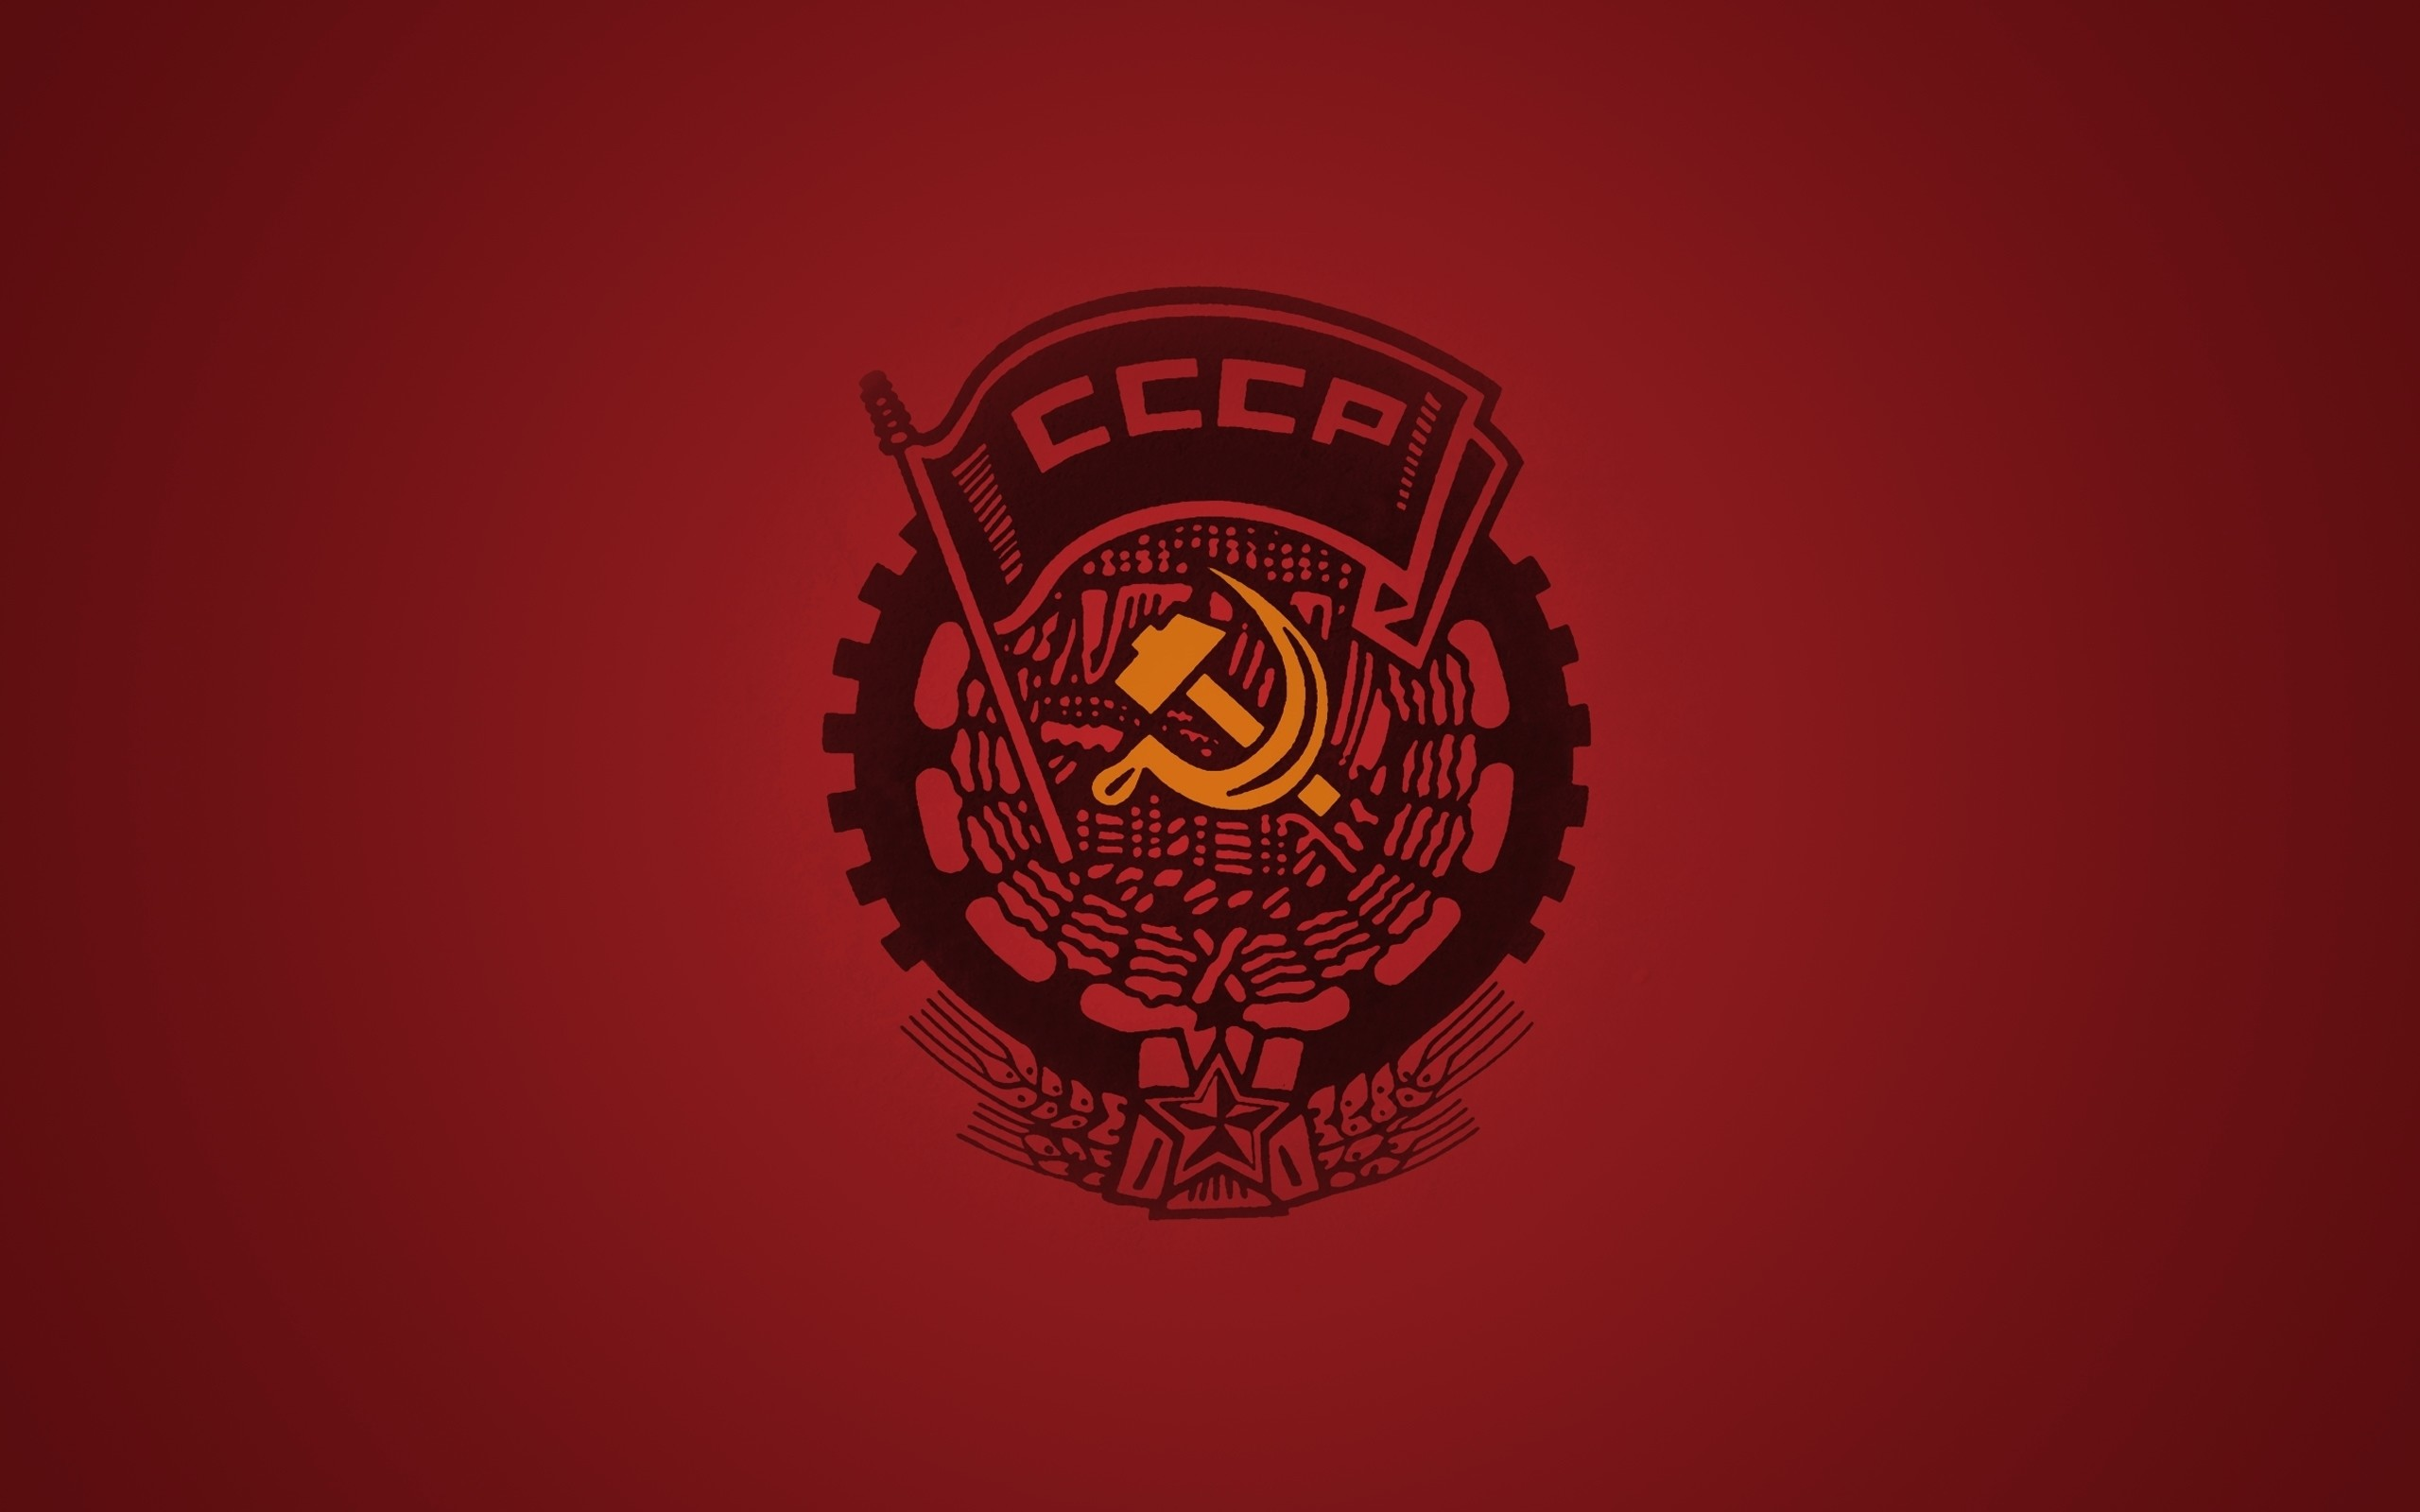 Ussr wallpaper 69 images - Ussr wallpaper ...